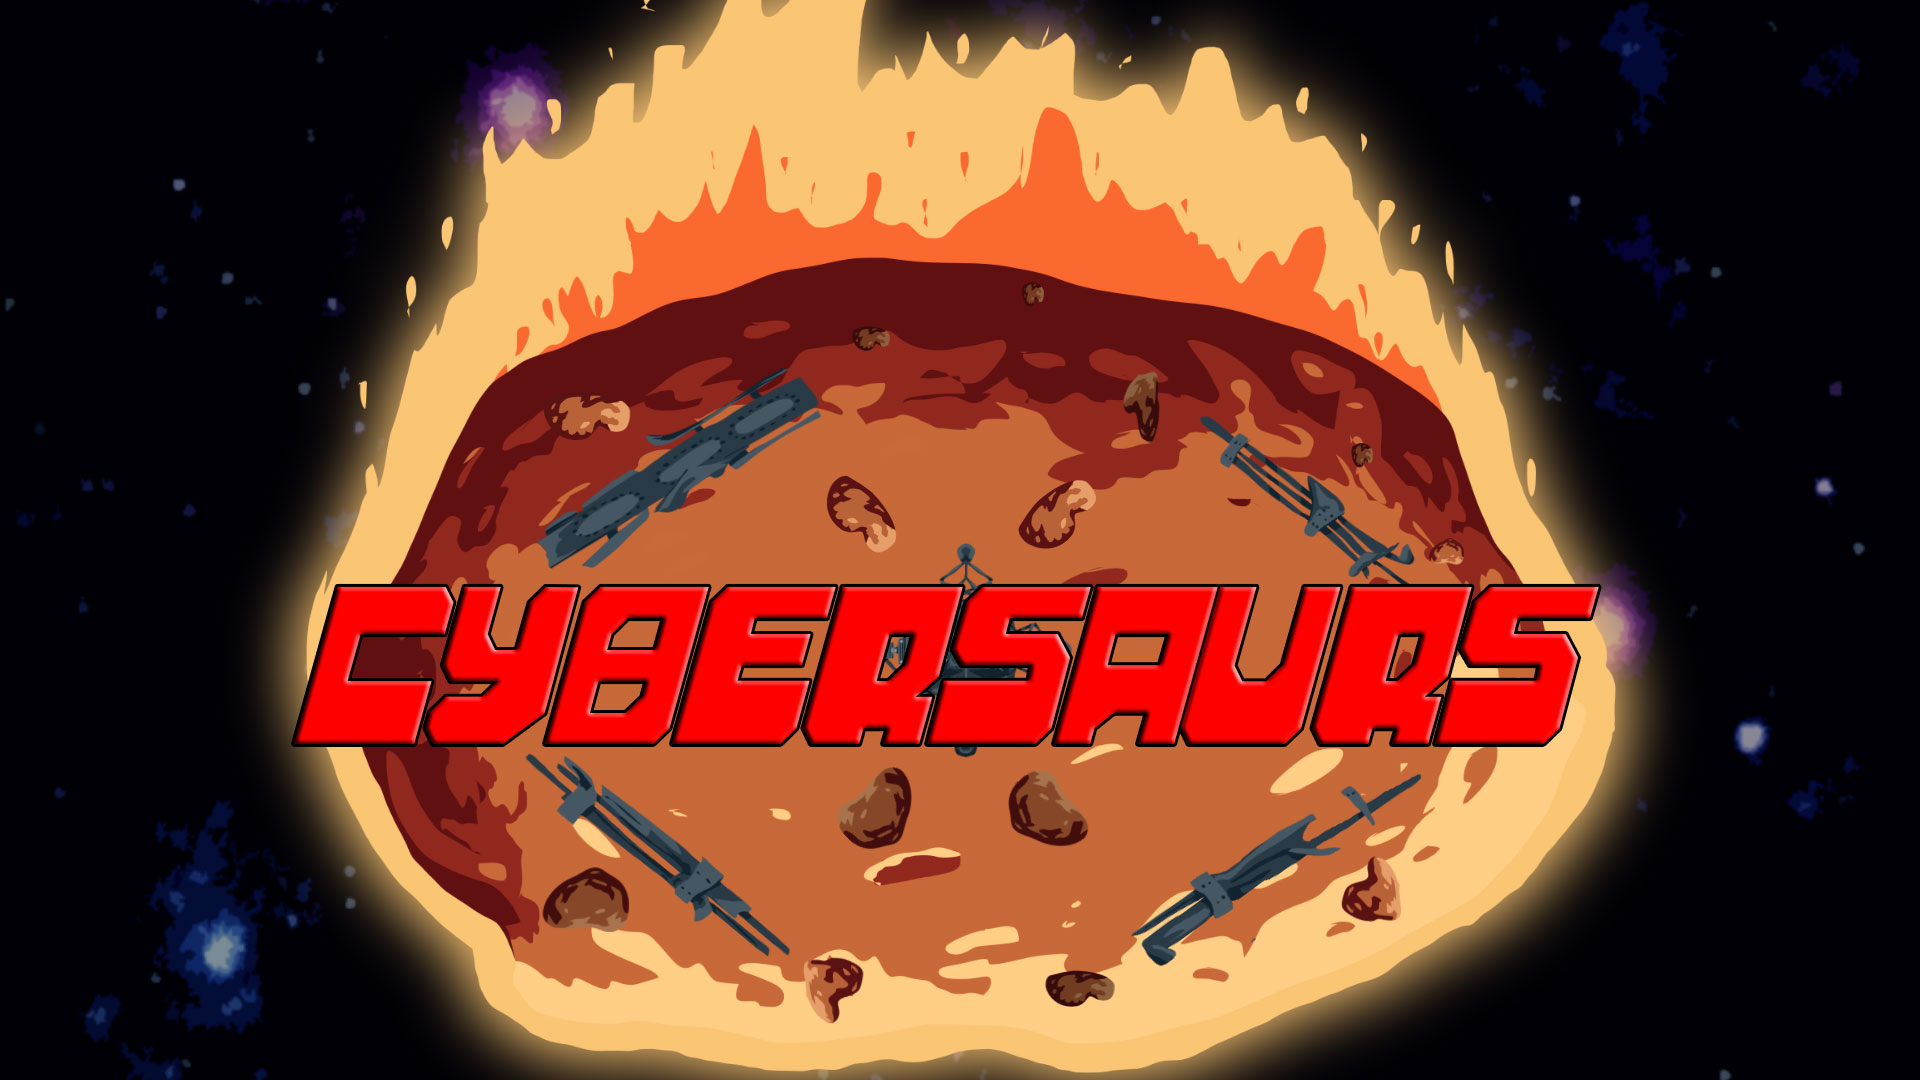 Cybersaurs: Dinosaurs in Space